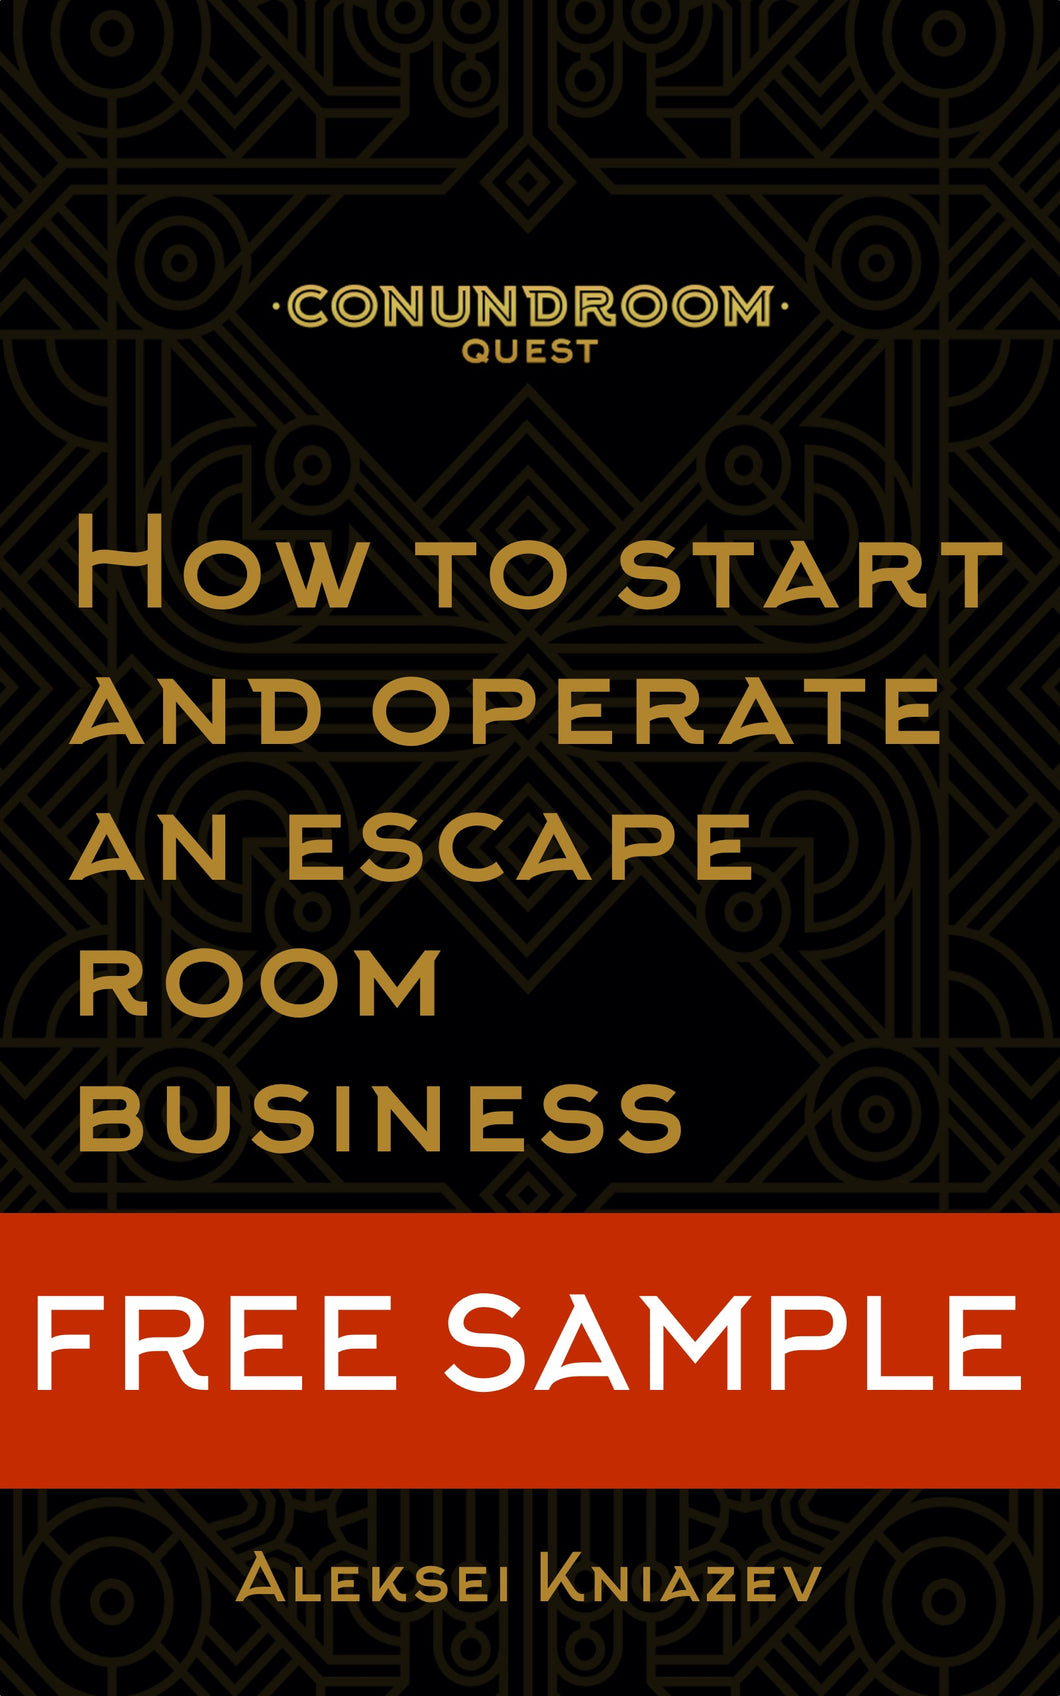 eBook Free Sample: How to open an escape room business?